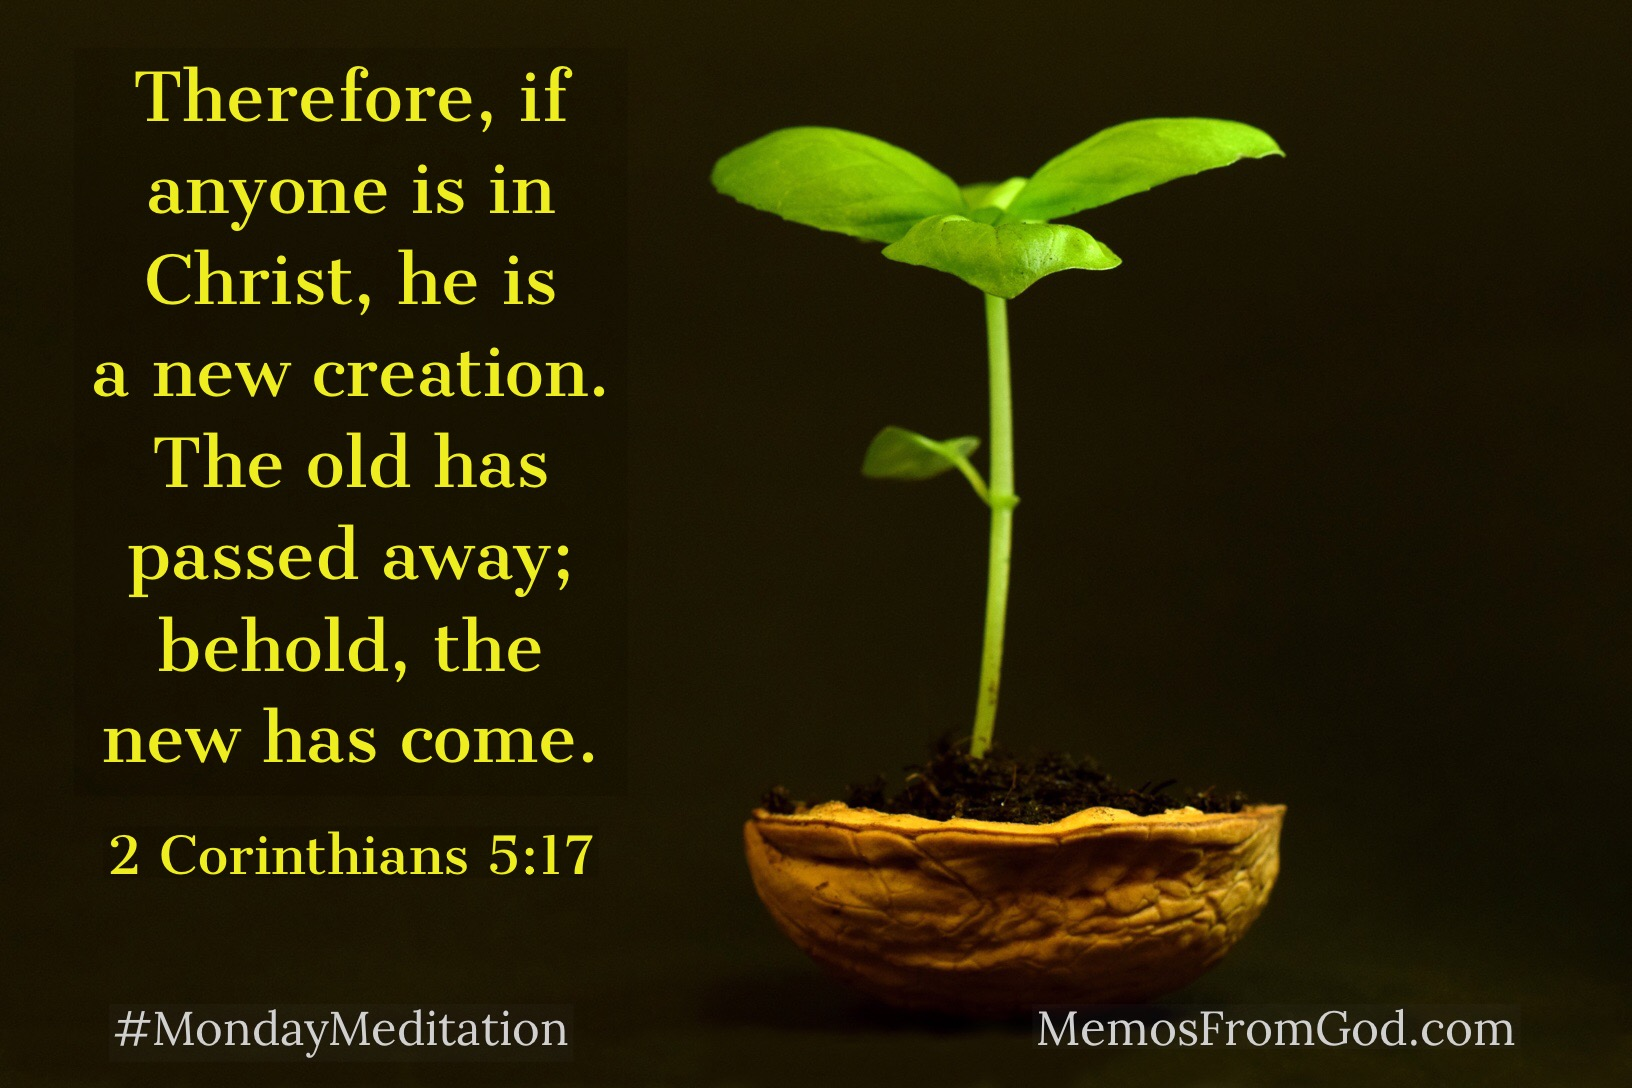 Therefore, if anyone is in Christ, he is a new creation. The old has passed away; behold, the new has come.